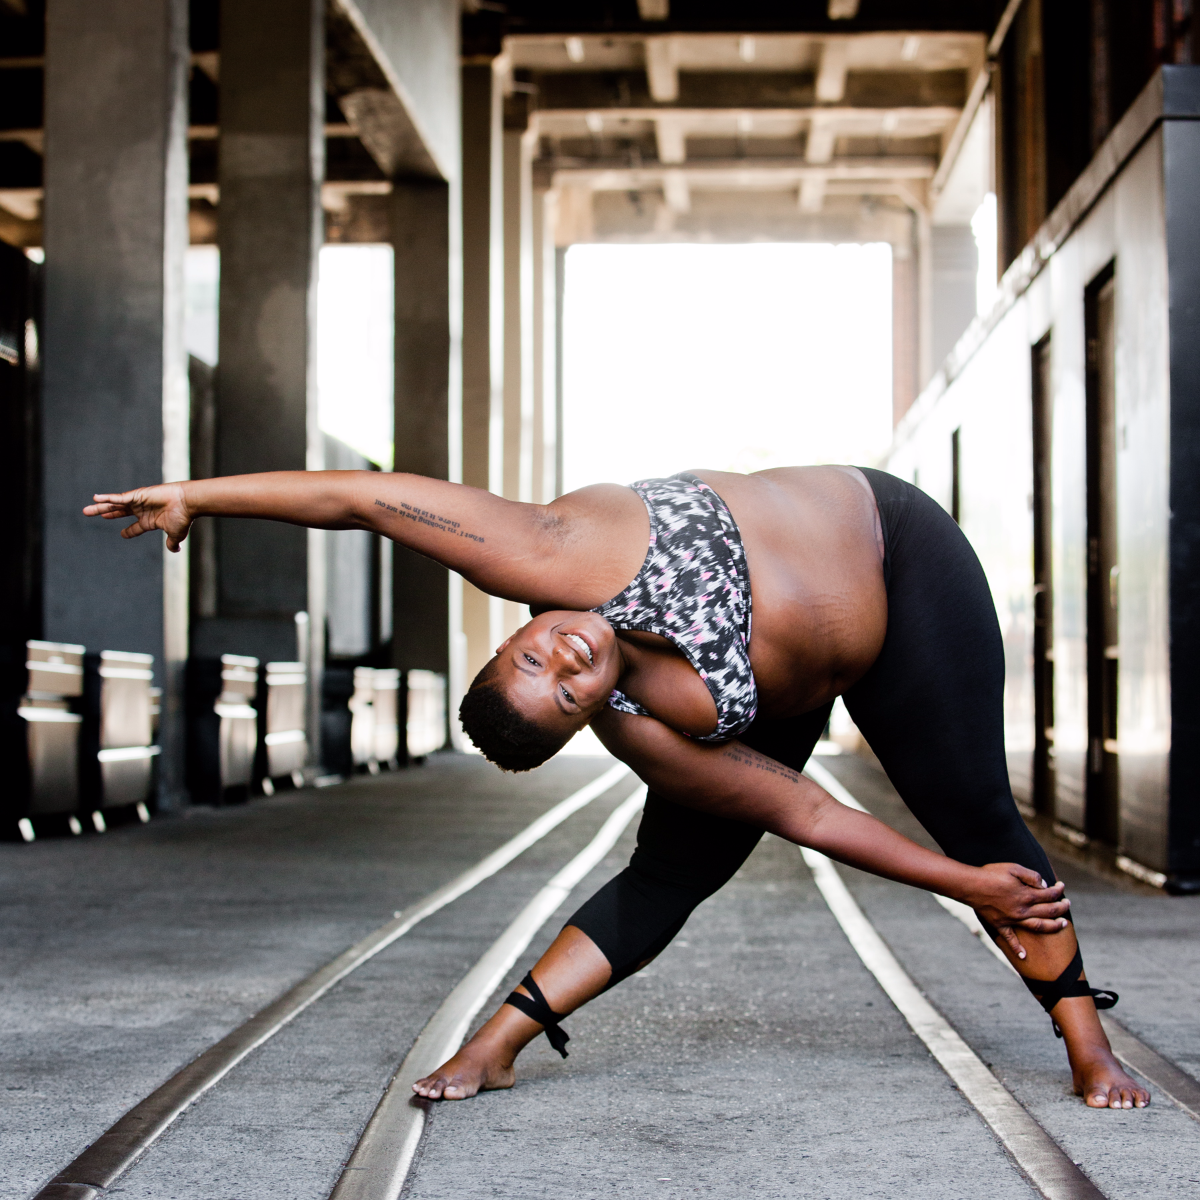 'Within the yoga world, there are very few depictions of anyone other than a cisgender, heterosexual, white, slender woman, and she always has a certain amount of money,' Stanley said. 'But all of that is just a product of marketing. That's not yoga.' (Photo by Christine Hewitt/Courtesy of Jessamyn Stanley)